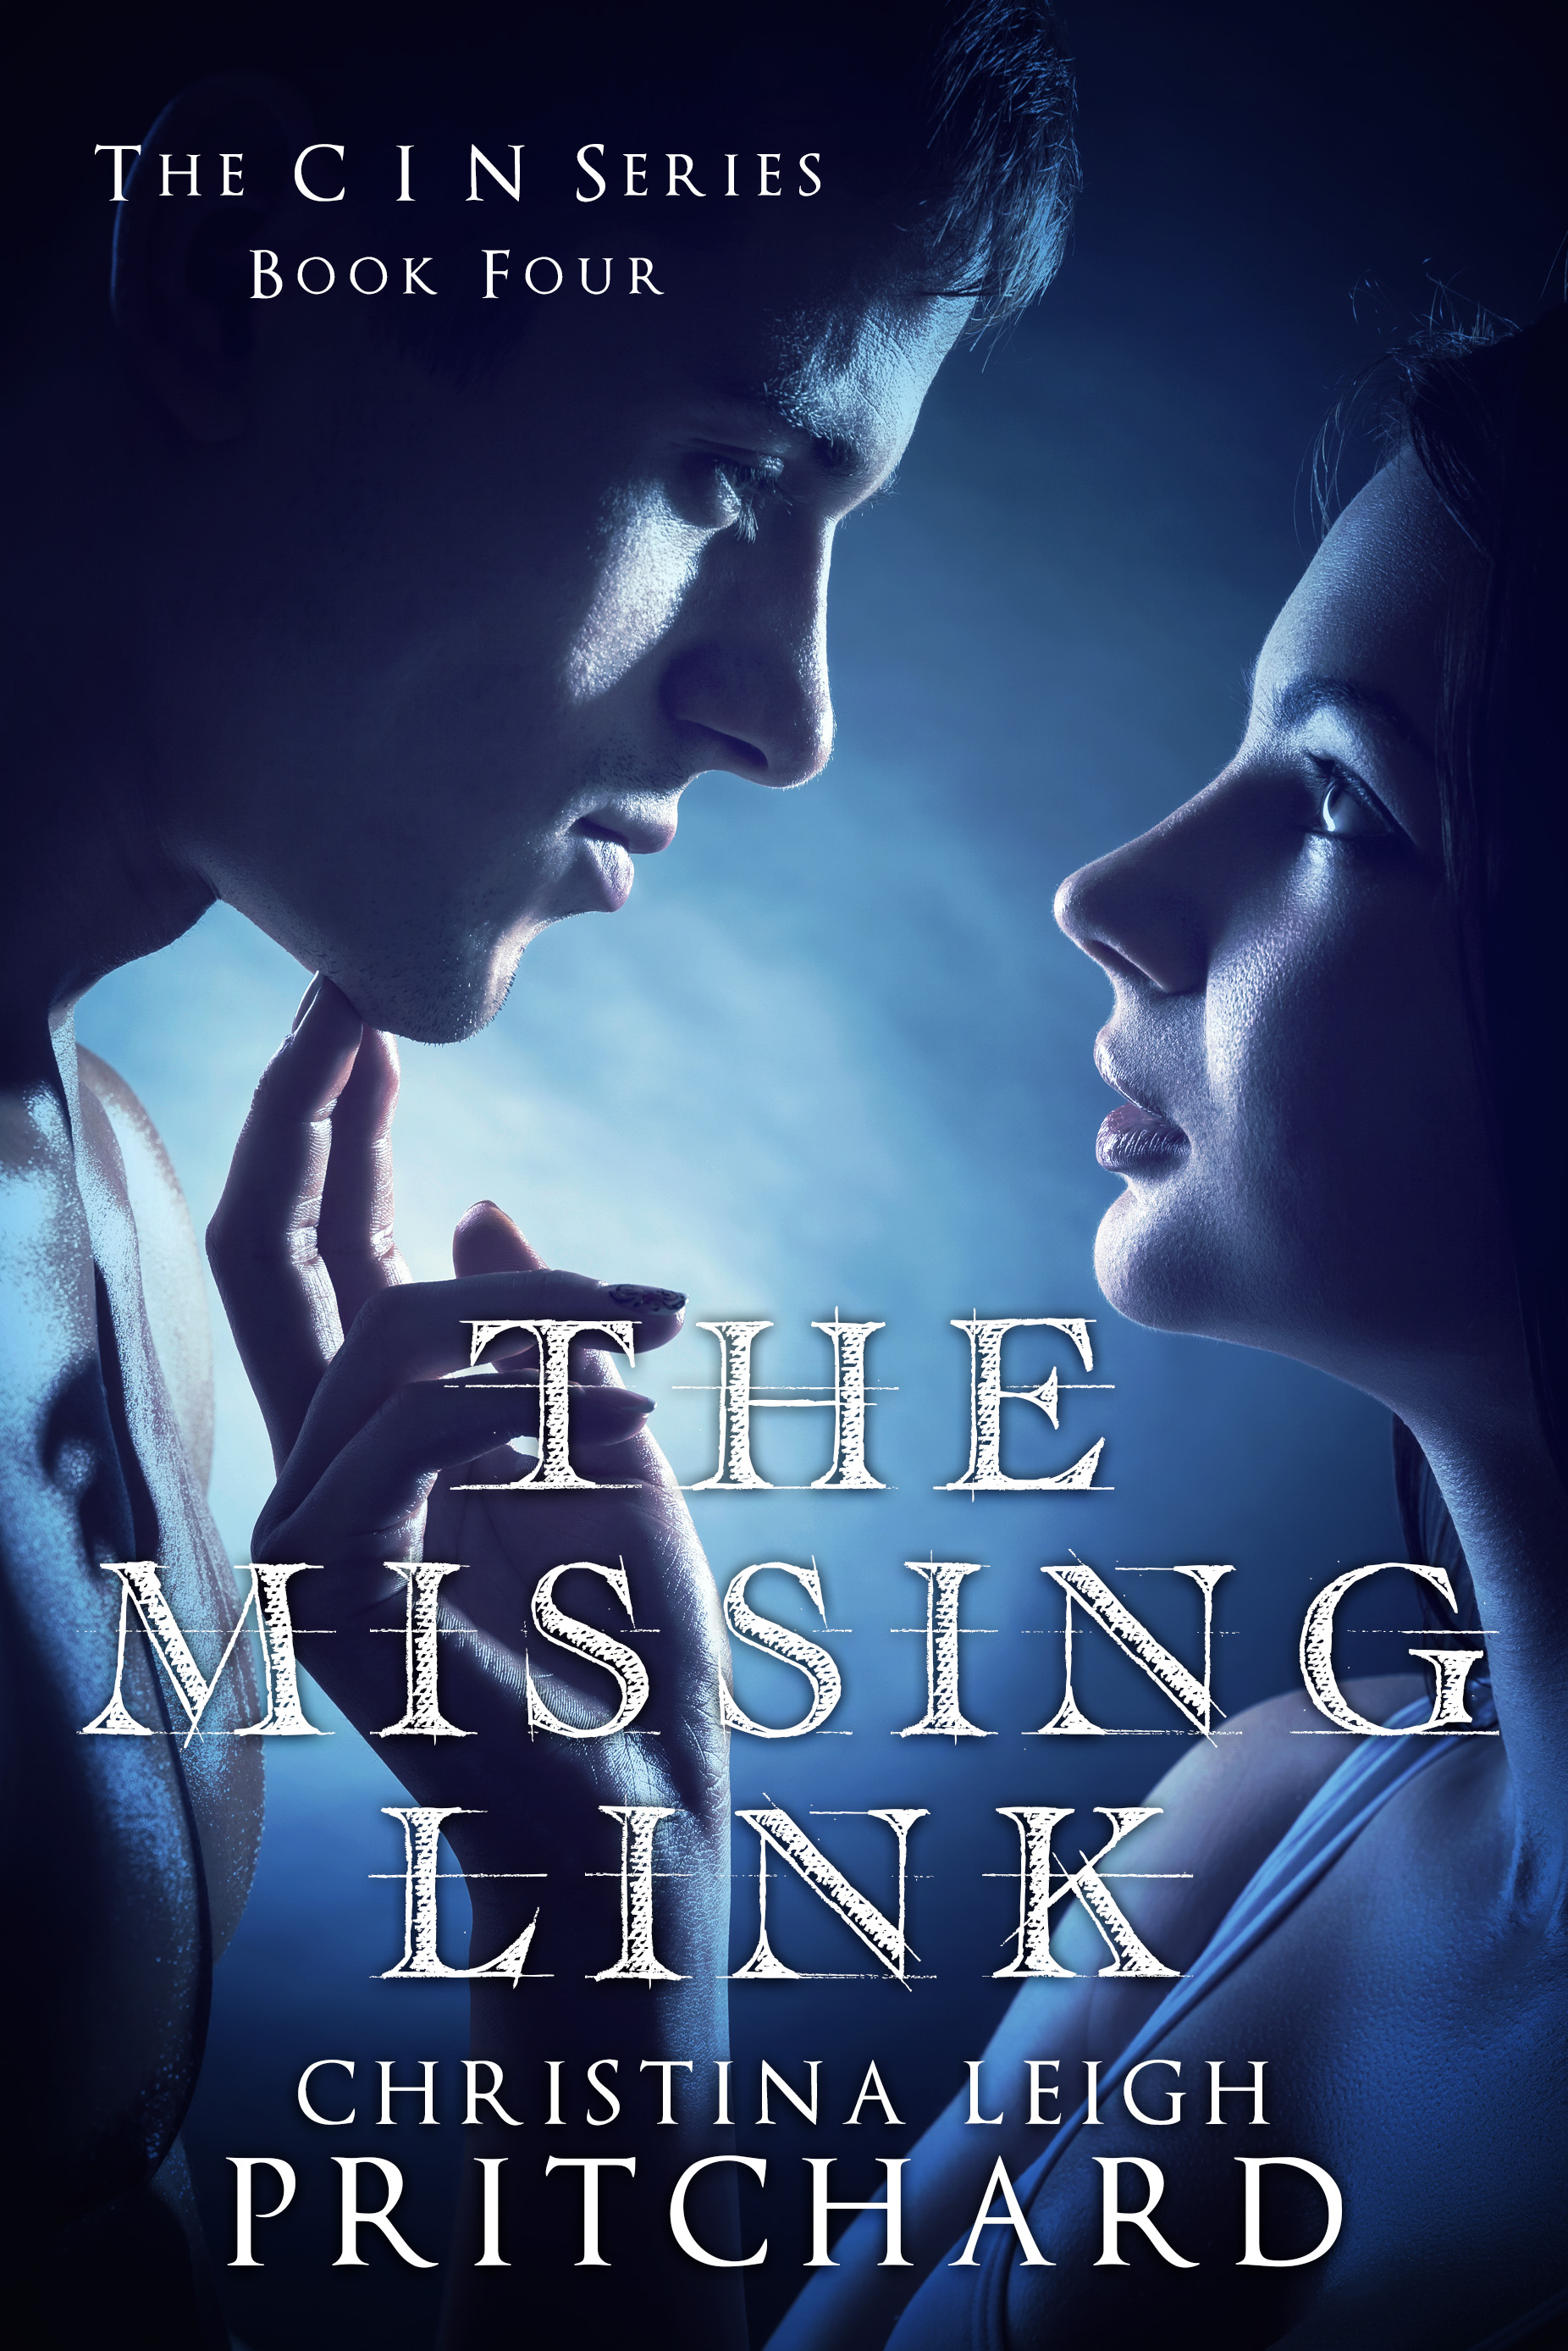 The Missing Link #4